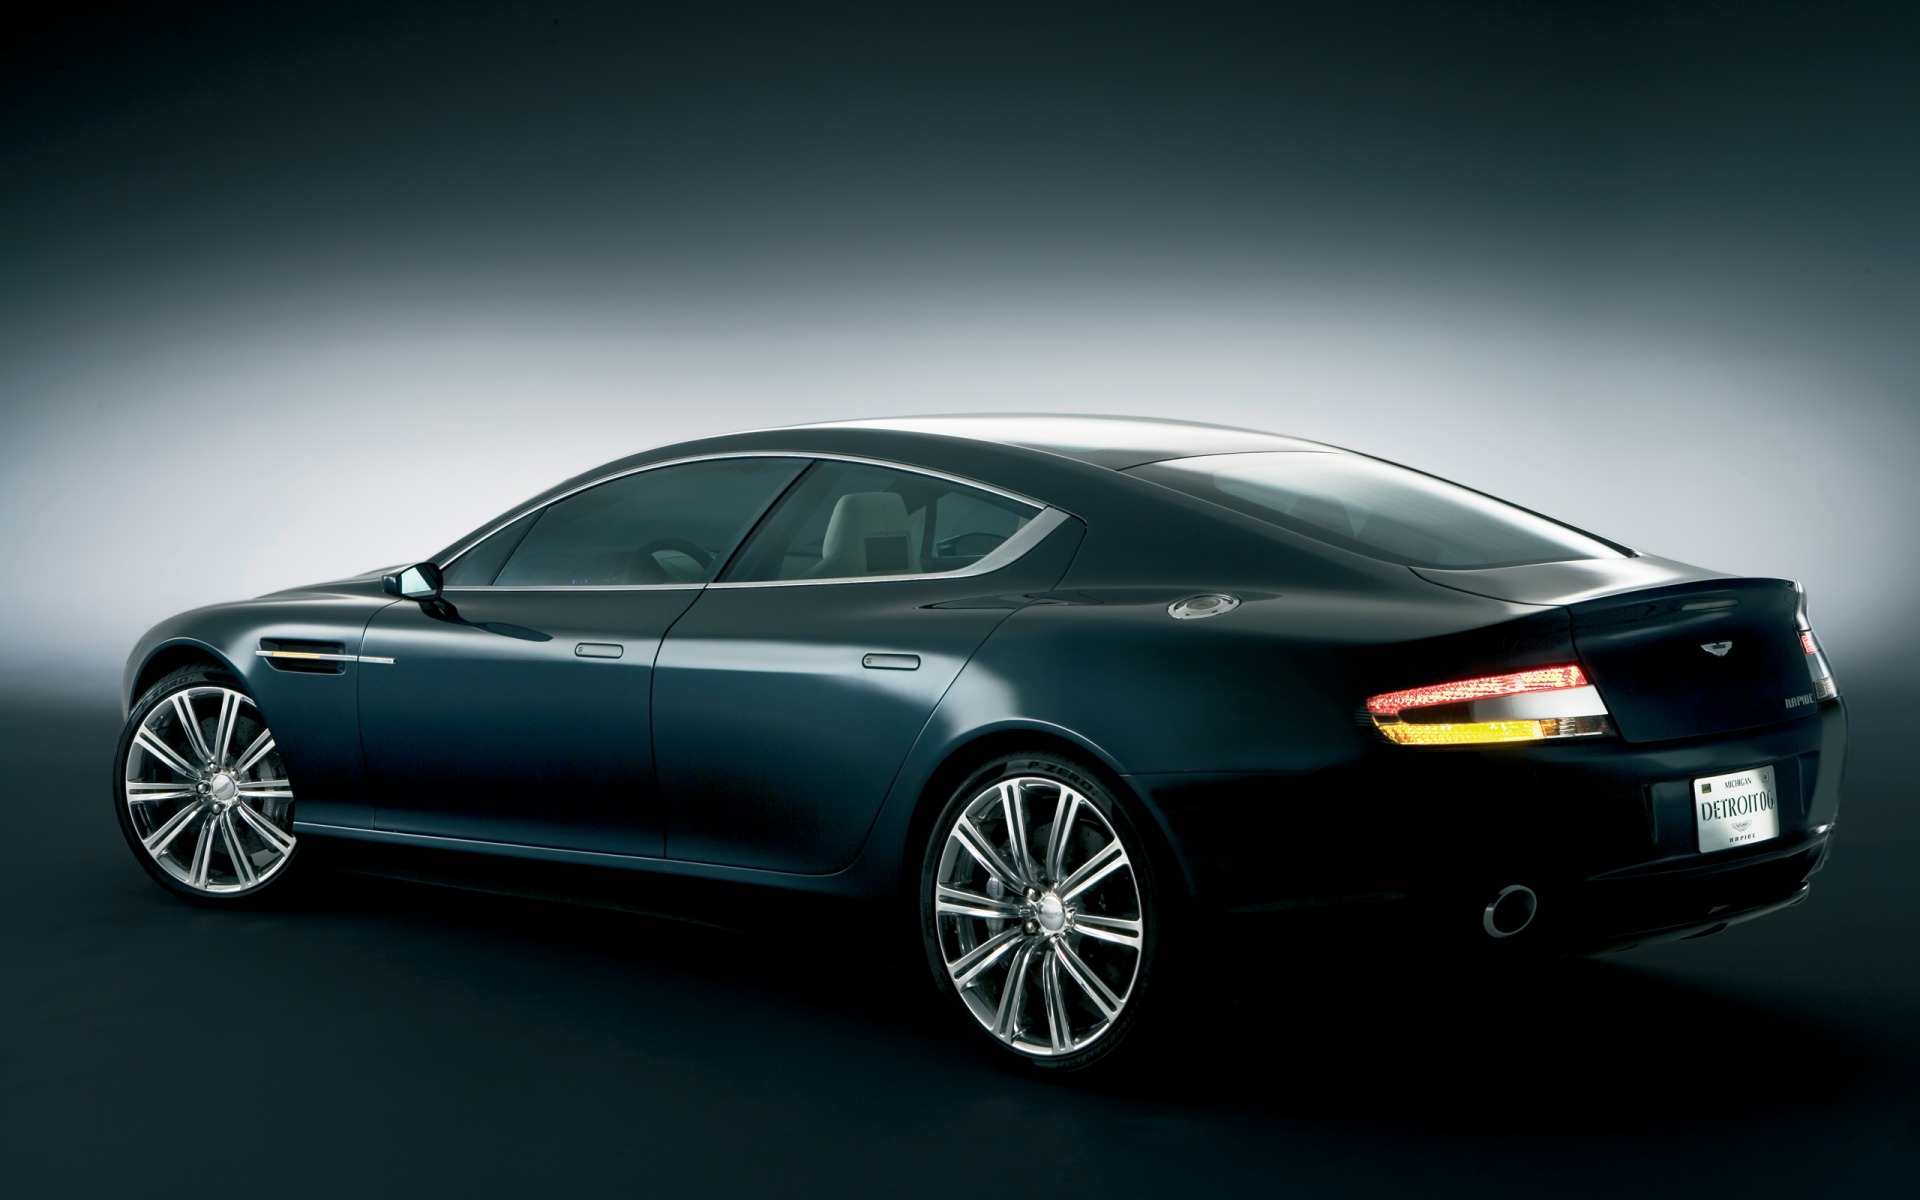 aston martin rapide wallpaper 3d characters 3d wallpapers in jpg. Cars Review. Best American Auto & Cars Review